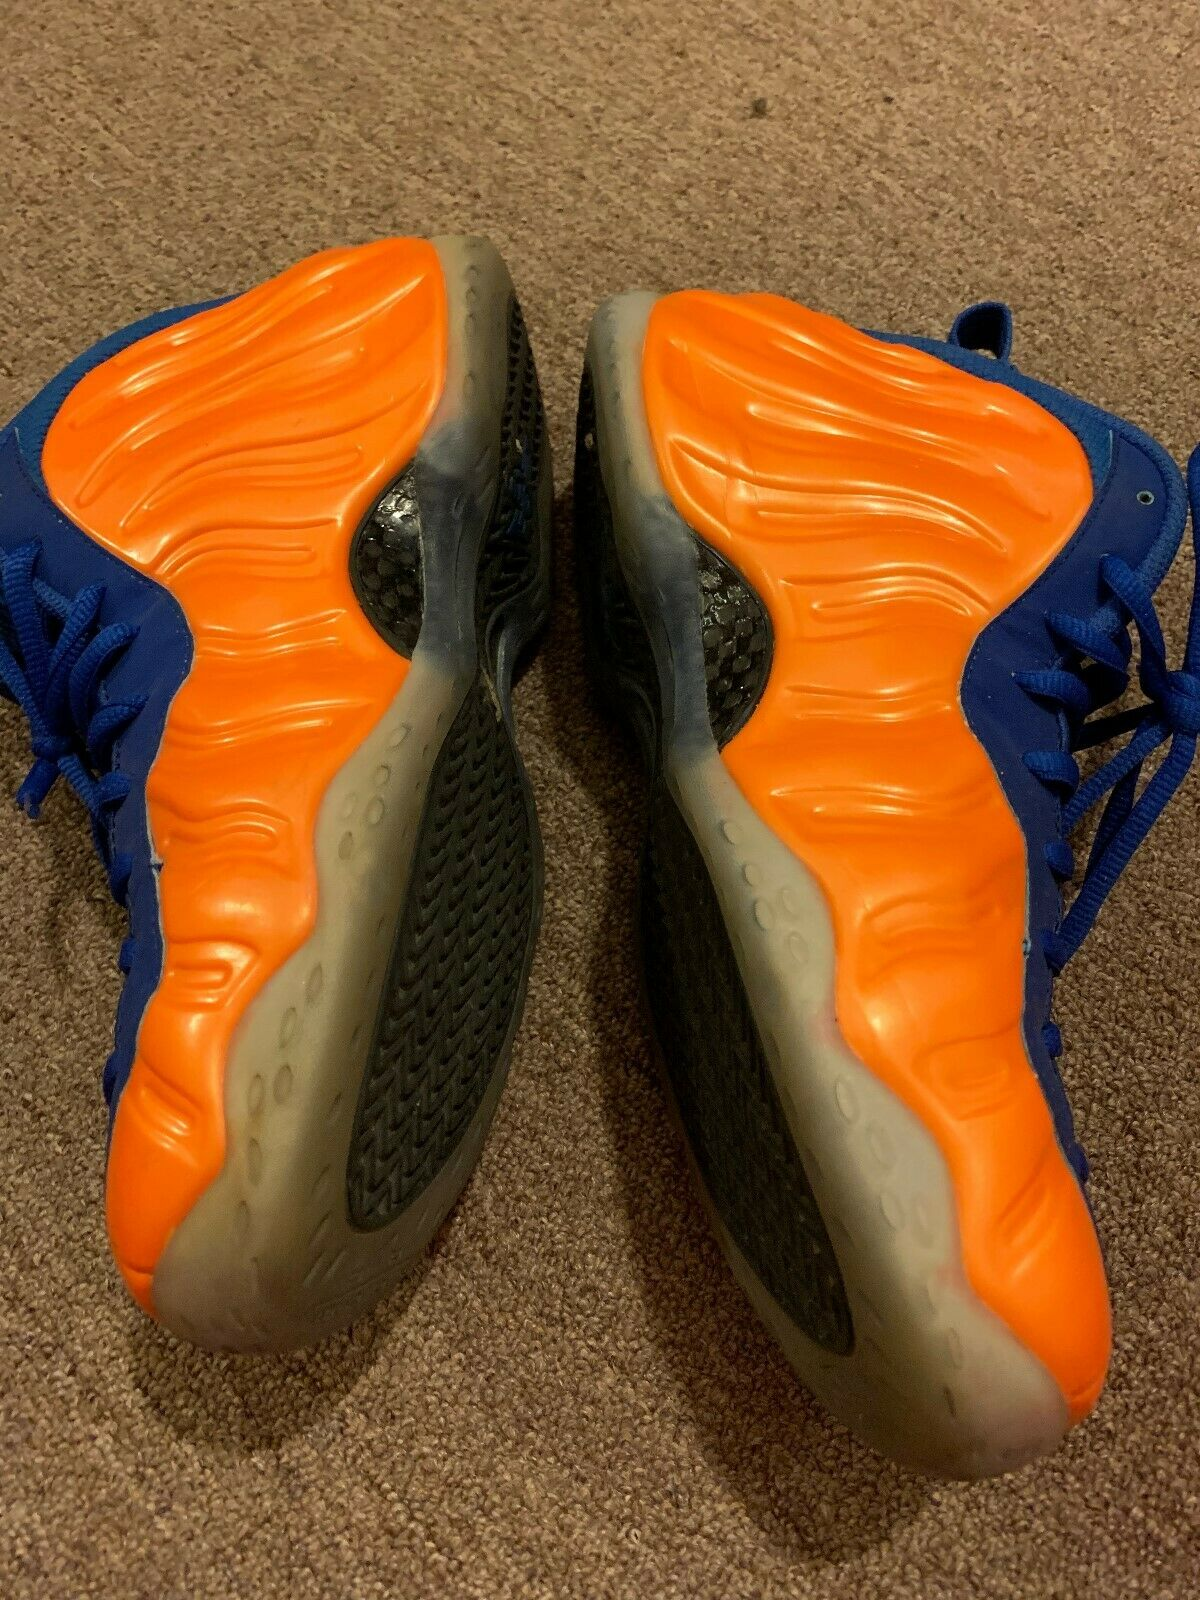 8d75800401e9 Used Used Used orange blueee Nike Foamposites e6a06d - slippers ...